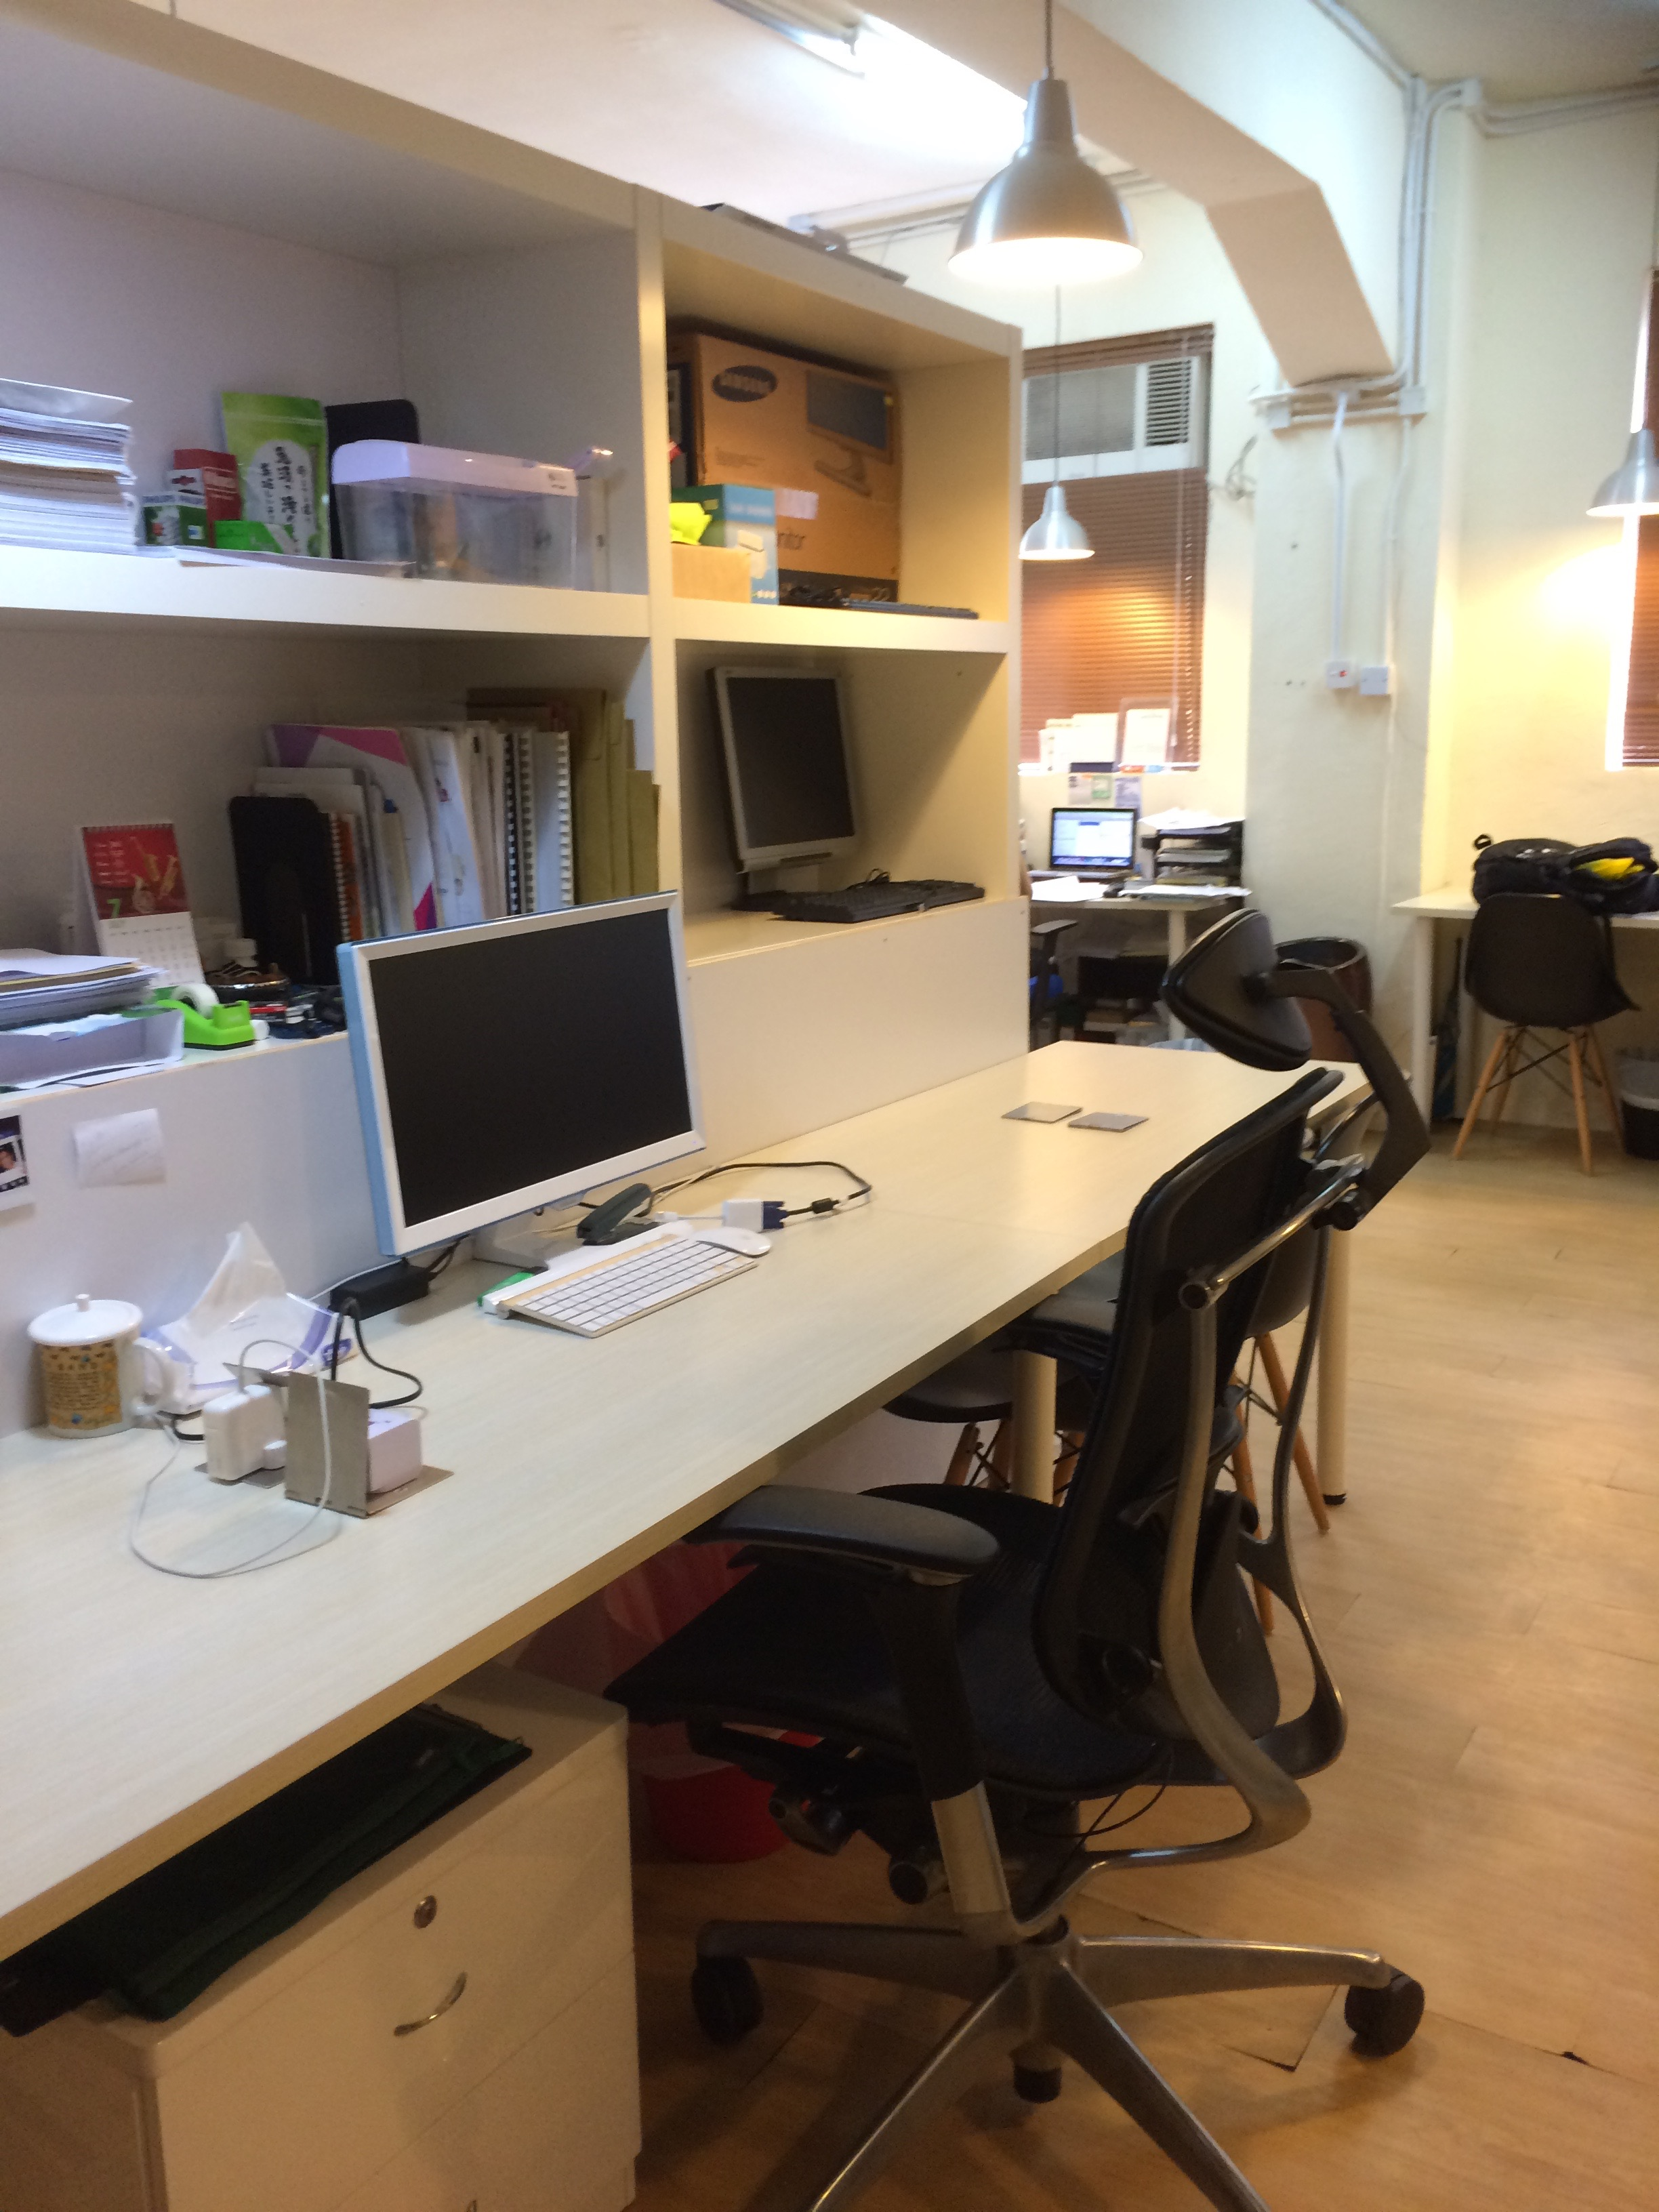 Retro Spot - Coworking Space in Hong Kong